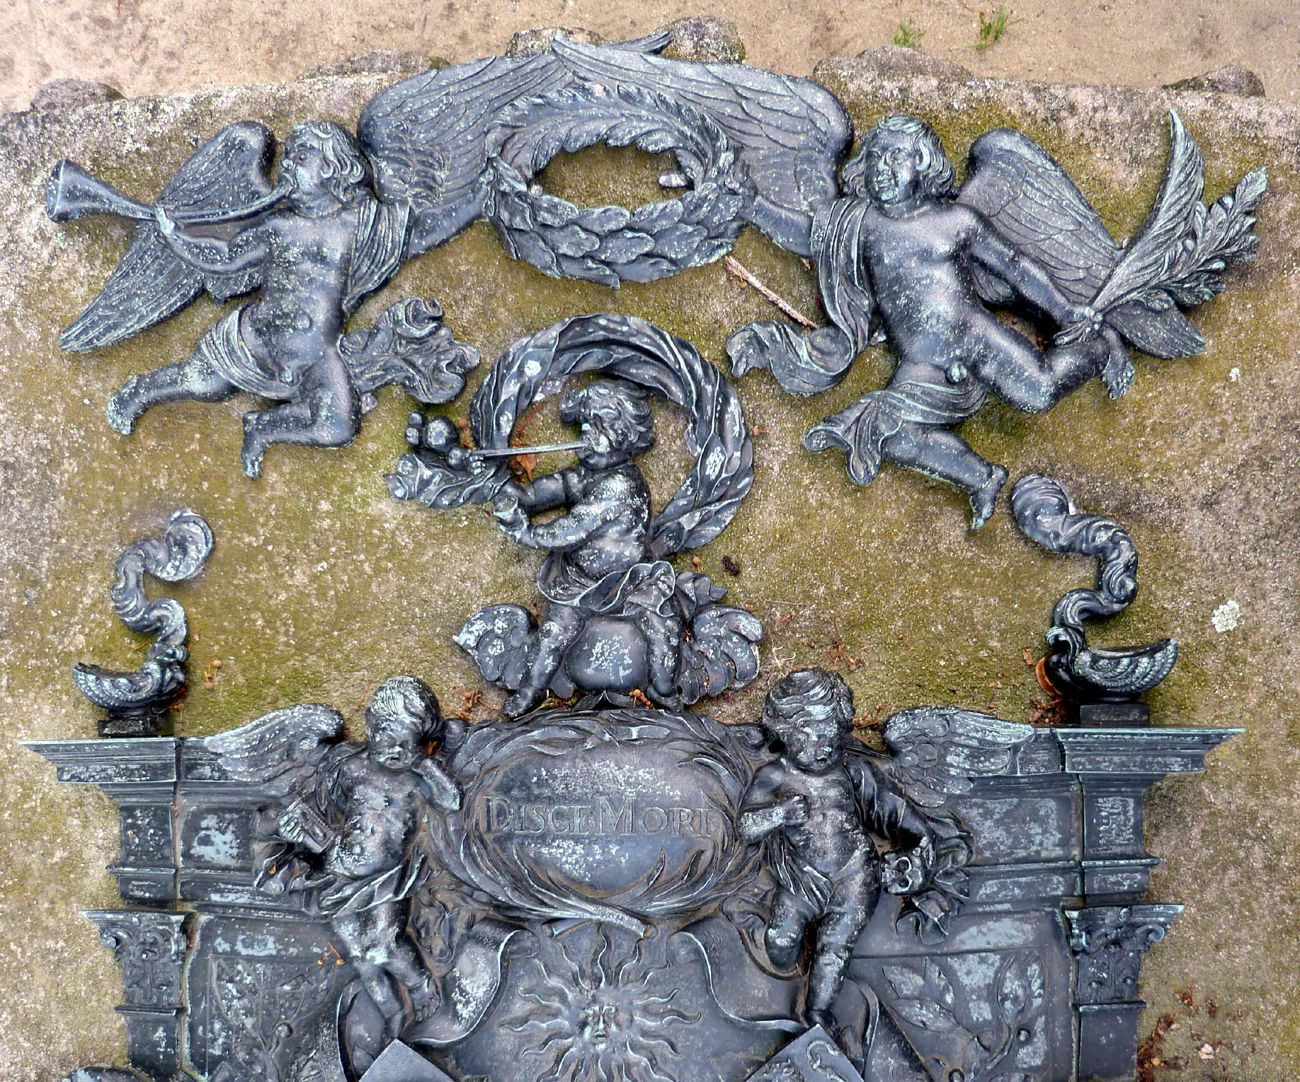 Epitaph of Andreas Georg Paumgartner Crowning Angels with trumpet and palm branch, below putto making soap bubbles